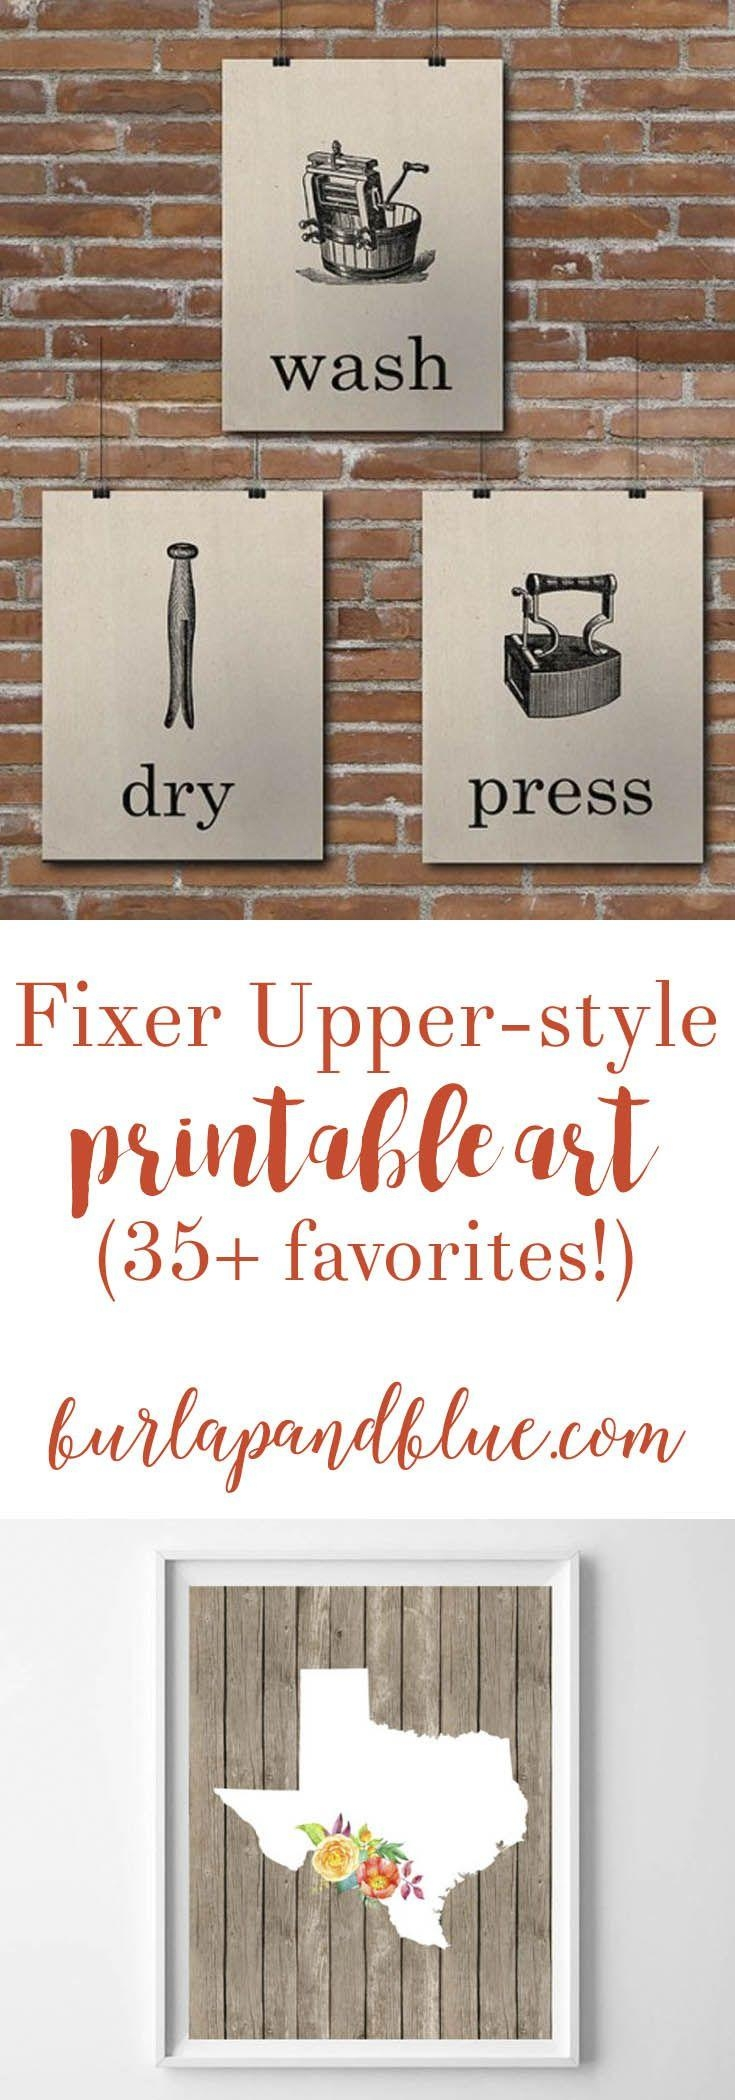 Best 25+ Laundry Room Wall Decor Ideas Only On Pinterest | Laundry Throughout Laundry Room Wall Art (View 6 of 20)